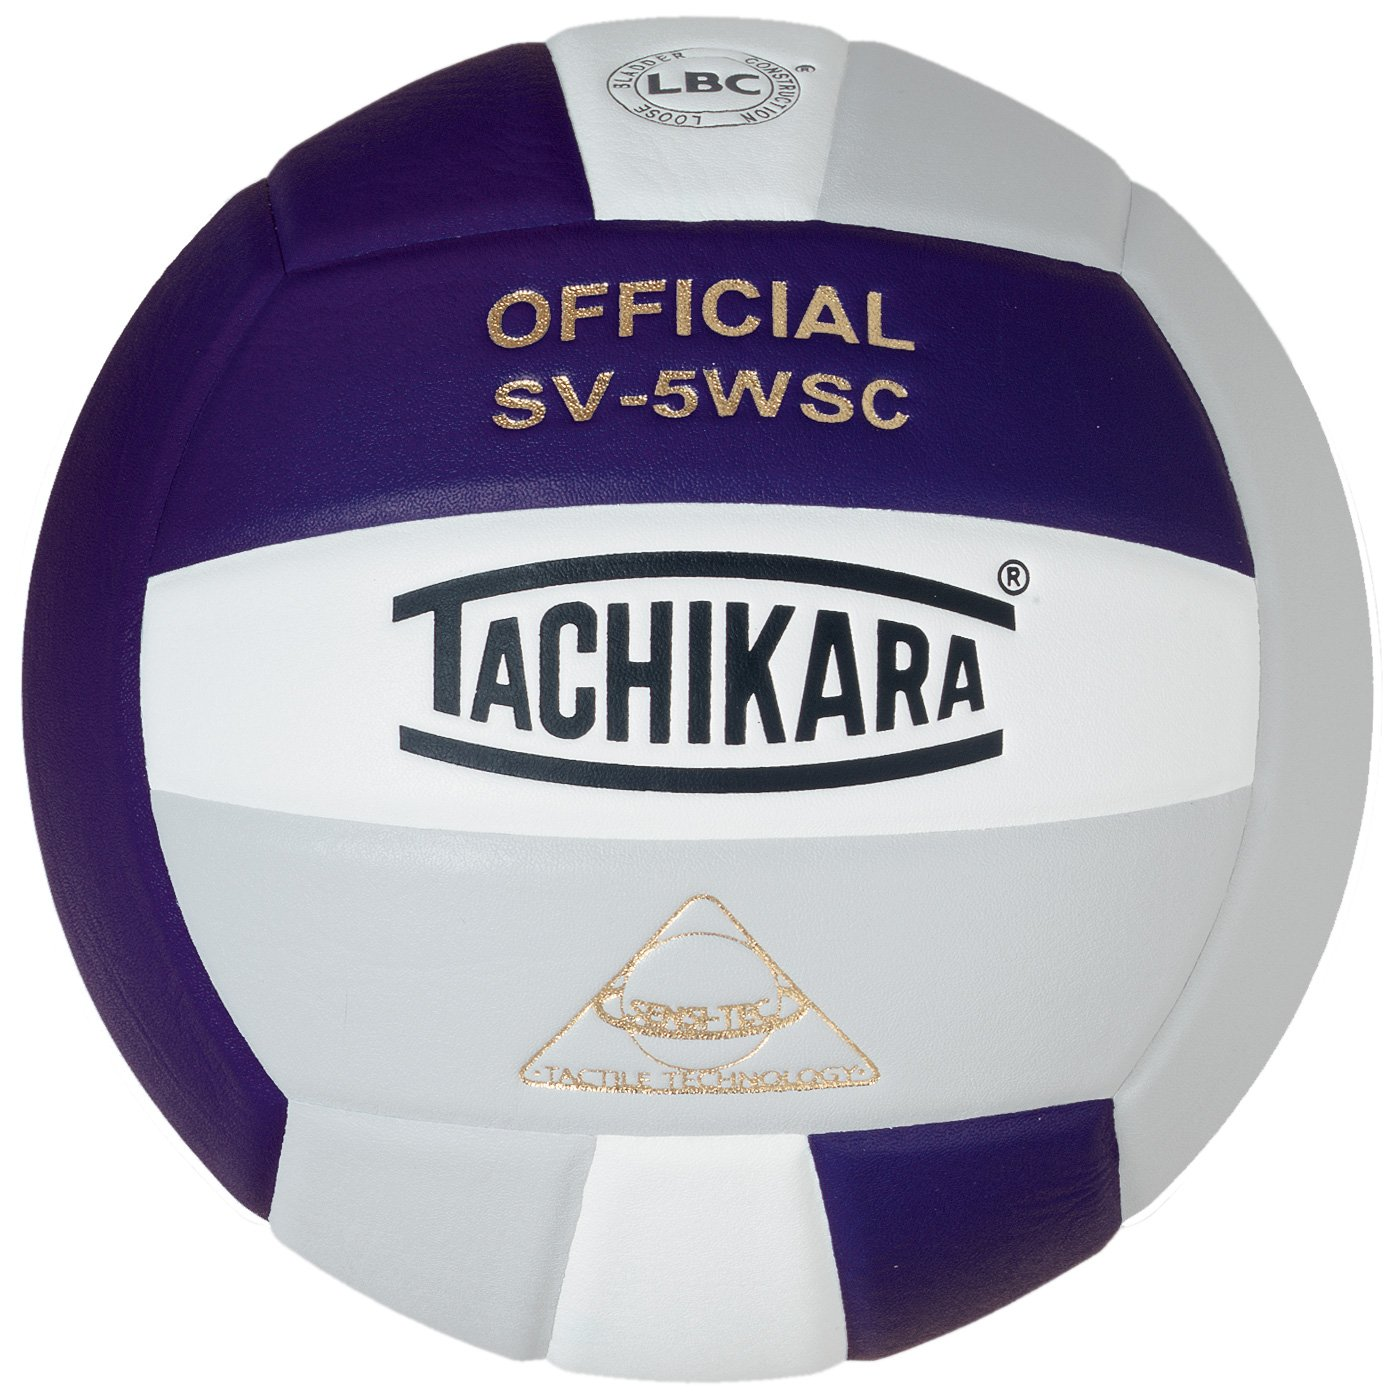 Tachikara Sensi-Tec Composite High Performance Volleyball (Purple/White/Silver Gray) by TACHIKARA